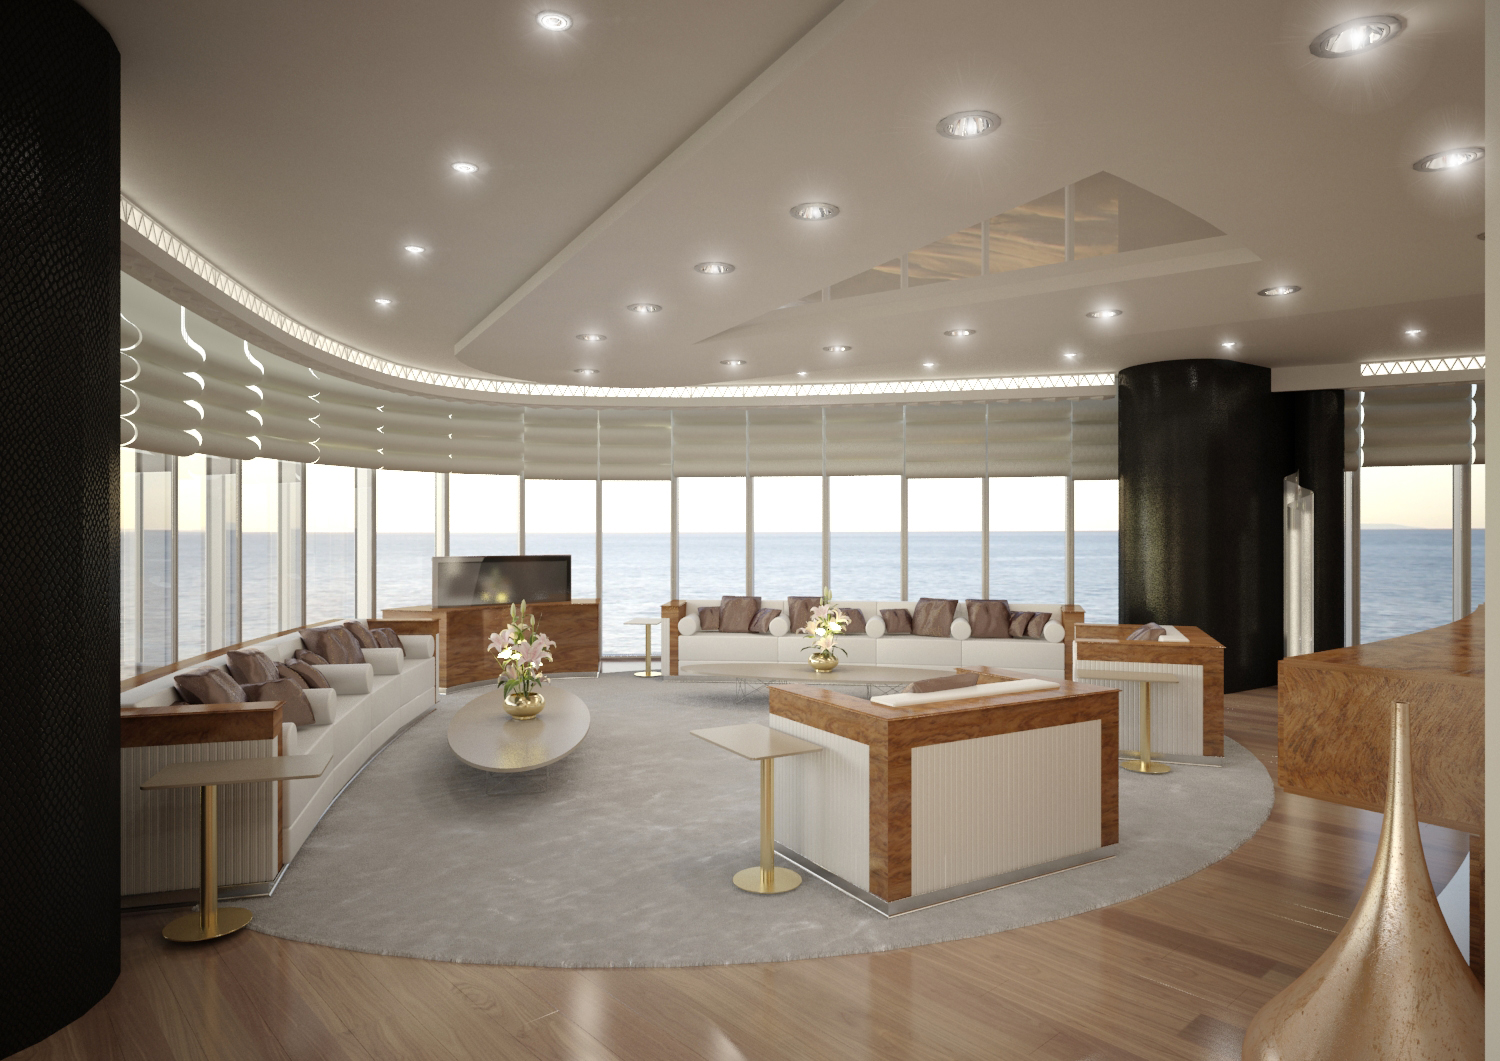 Tewes design nyc executive office seattle interior design - Executive Office Majlis Design Uae Www Lawylde Com